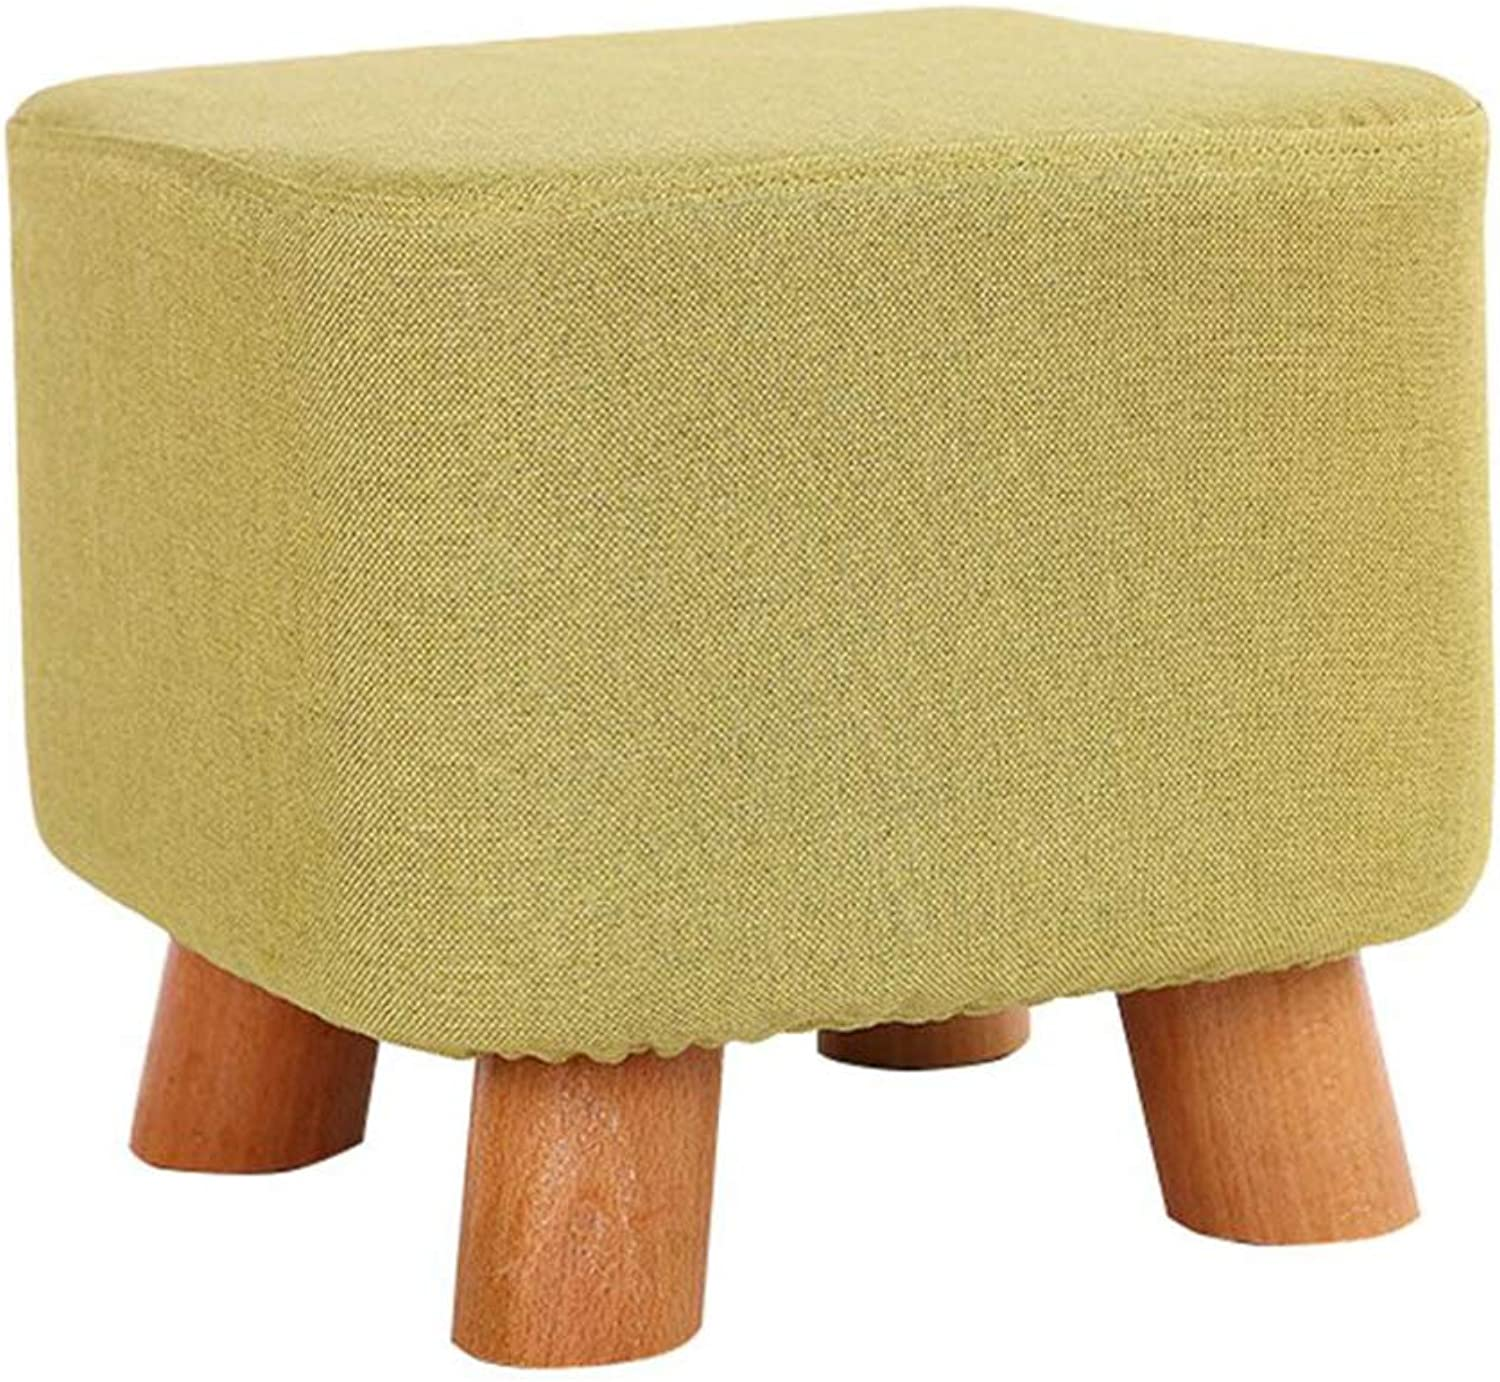 Stool - Sofa stool, Household Solid Wood Coffee Table stool, Fabric Small Bench stool, Cotton Cloth